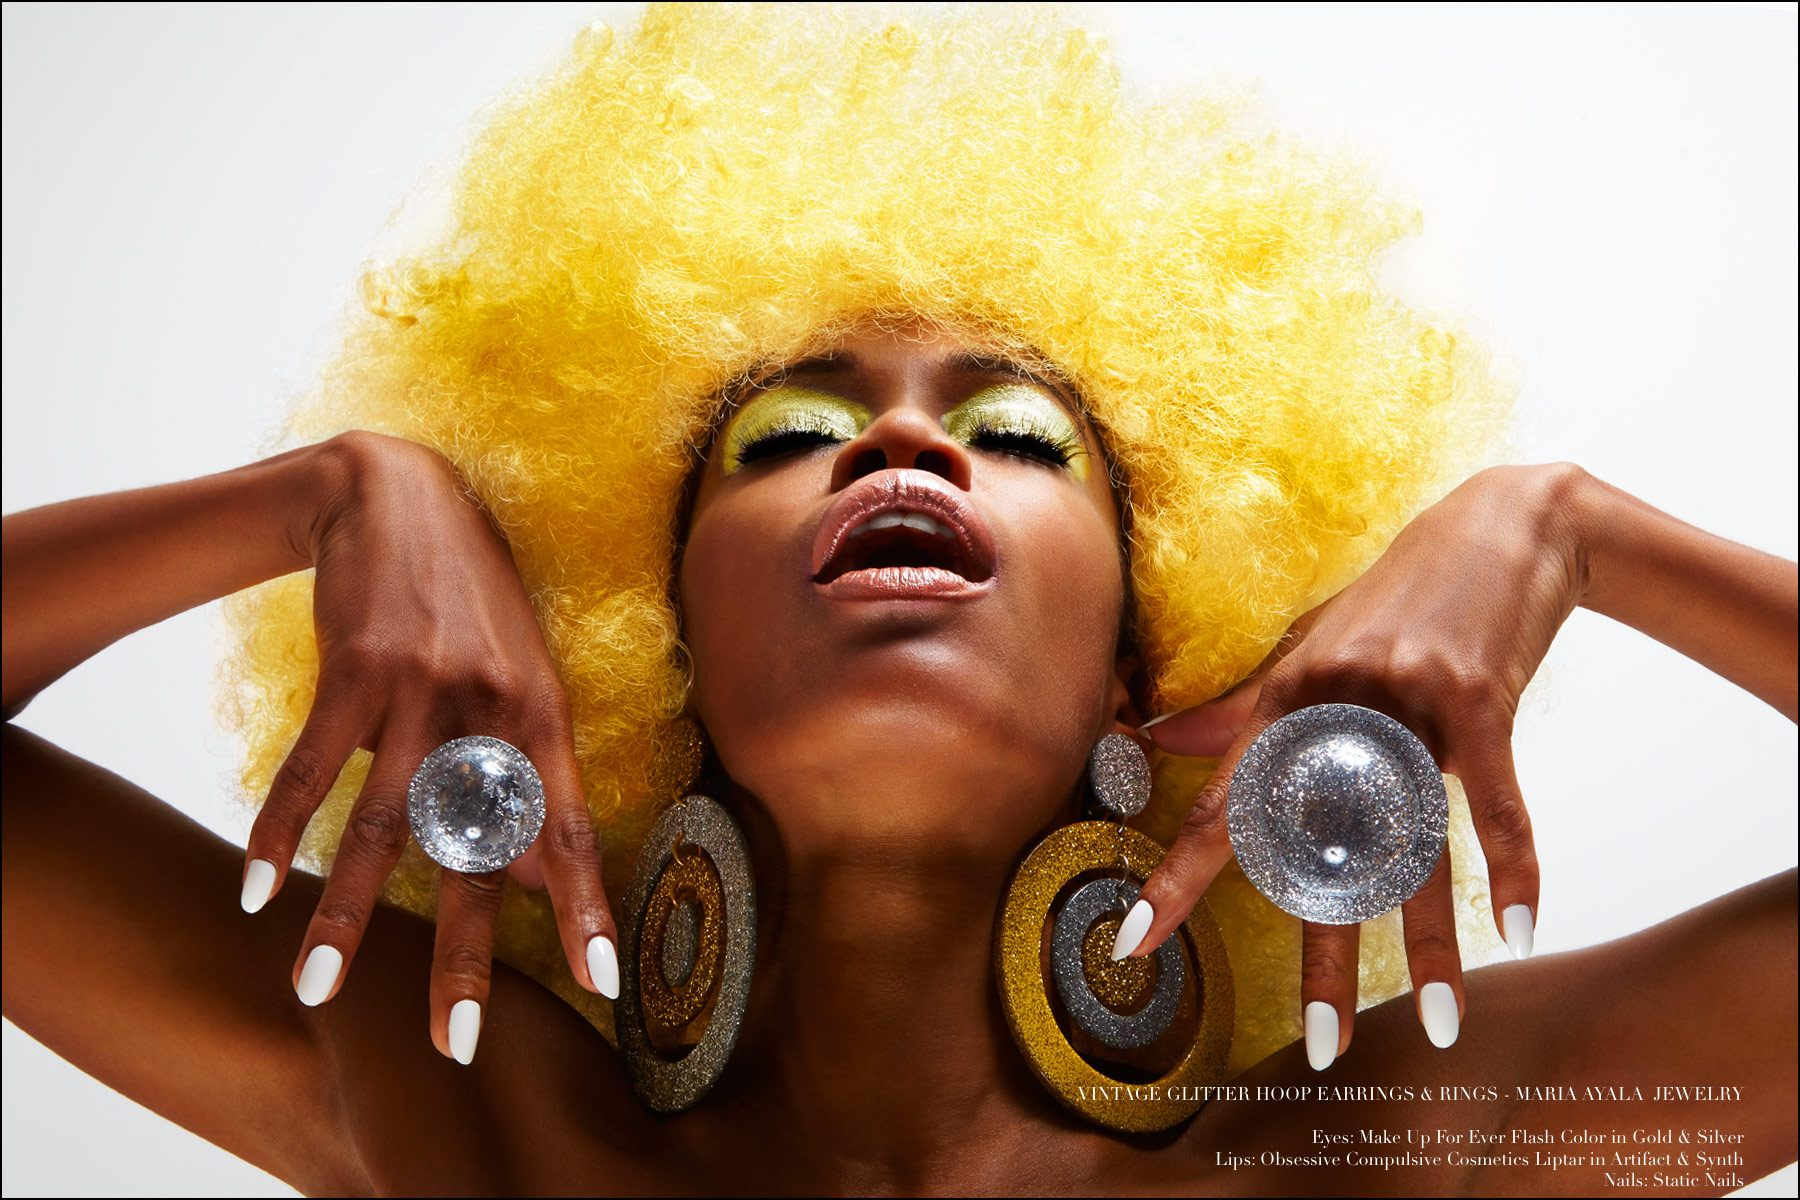 Glittery 60s inspired jewelry designed by Maria Ayala, modeled by Christina Anderson-McDonald. Photography for Ponyboy magazine NY by Alexander Thompson.